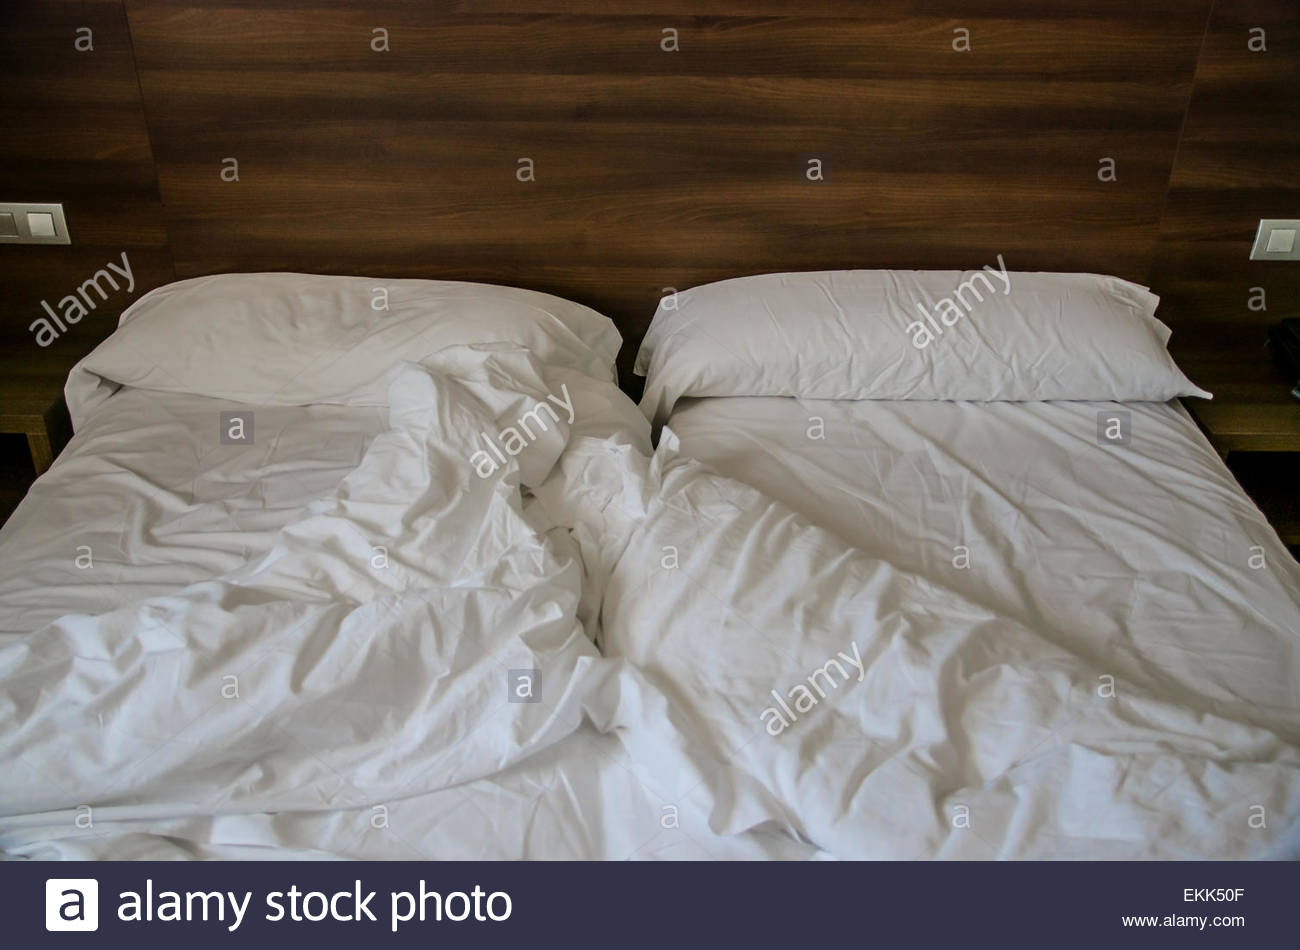 Empty messy bed after a night of sleeping - Stock Image